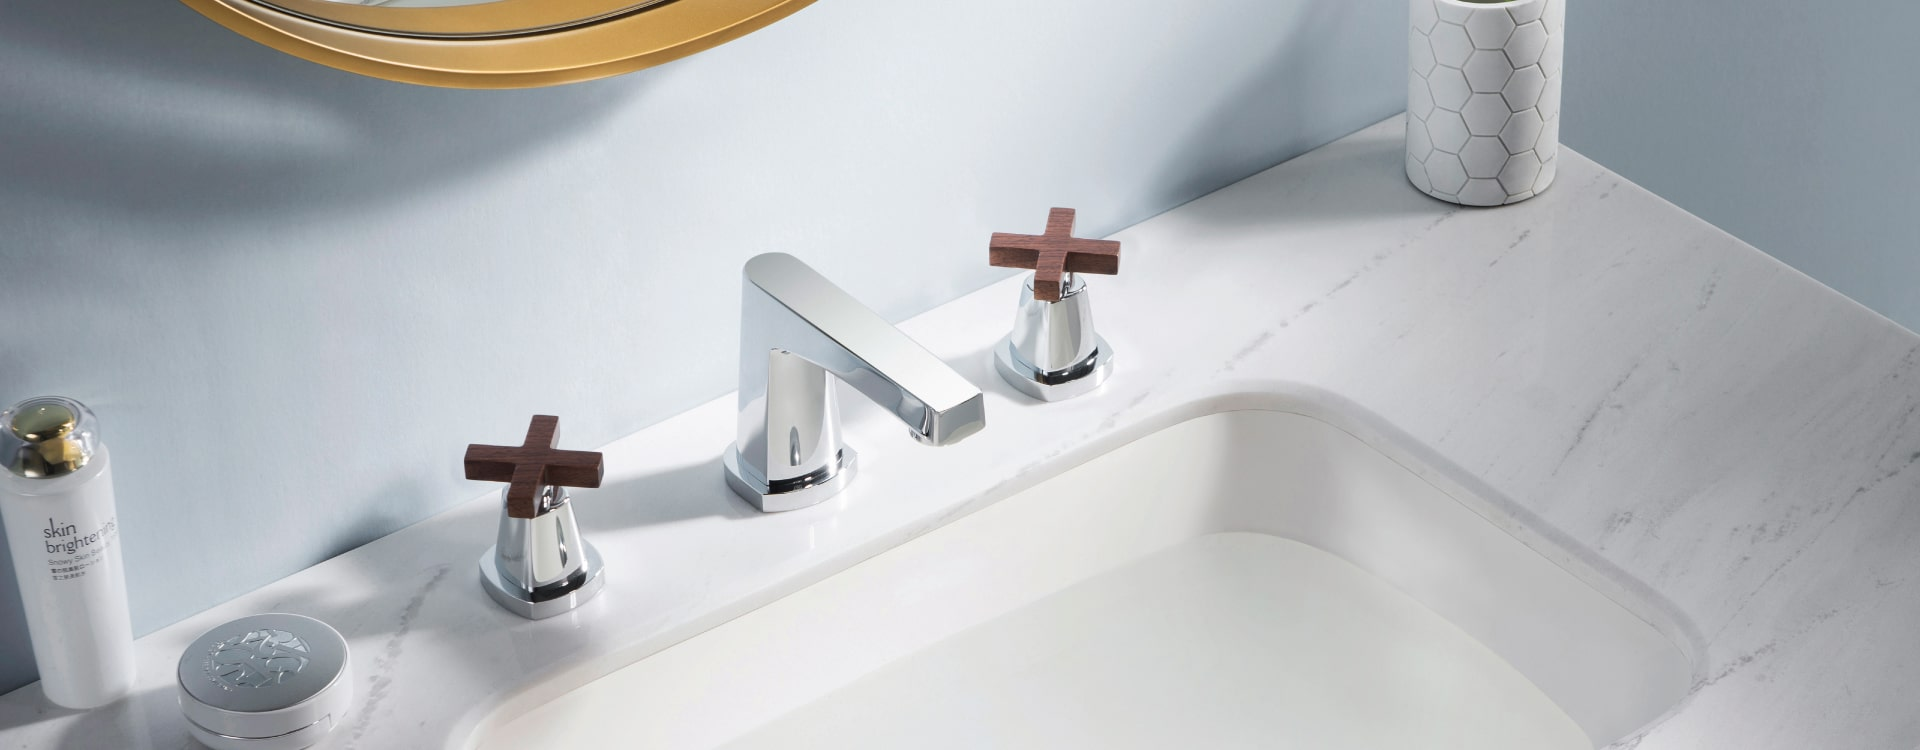 farmhouse bathroom faucet with wood handles